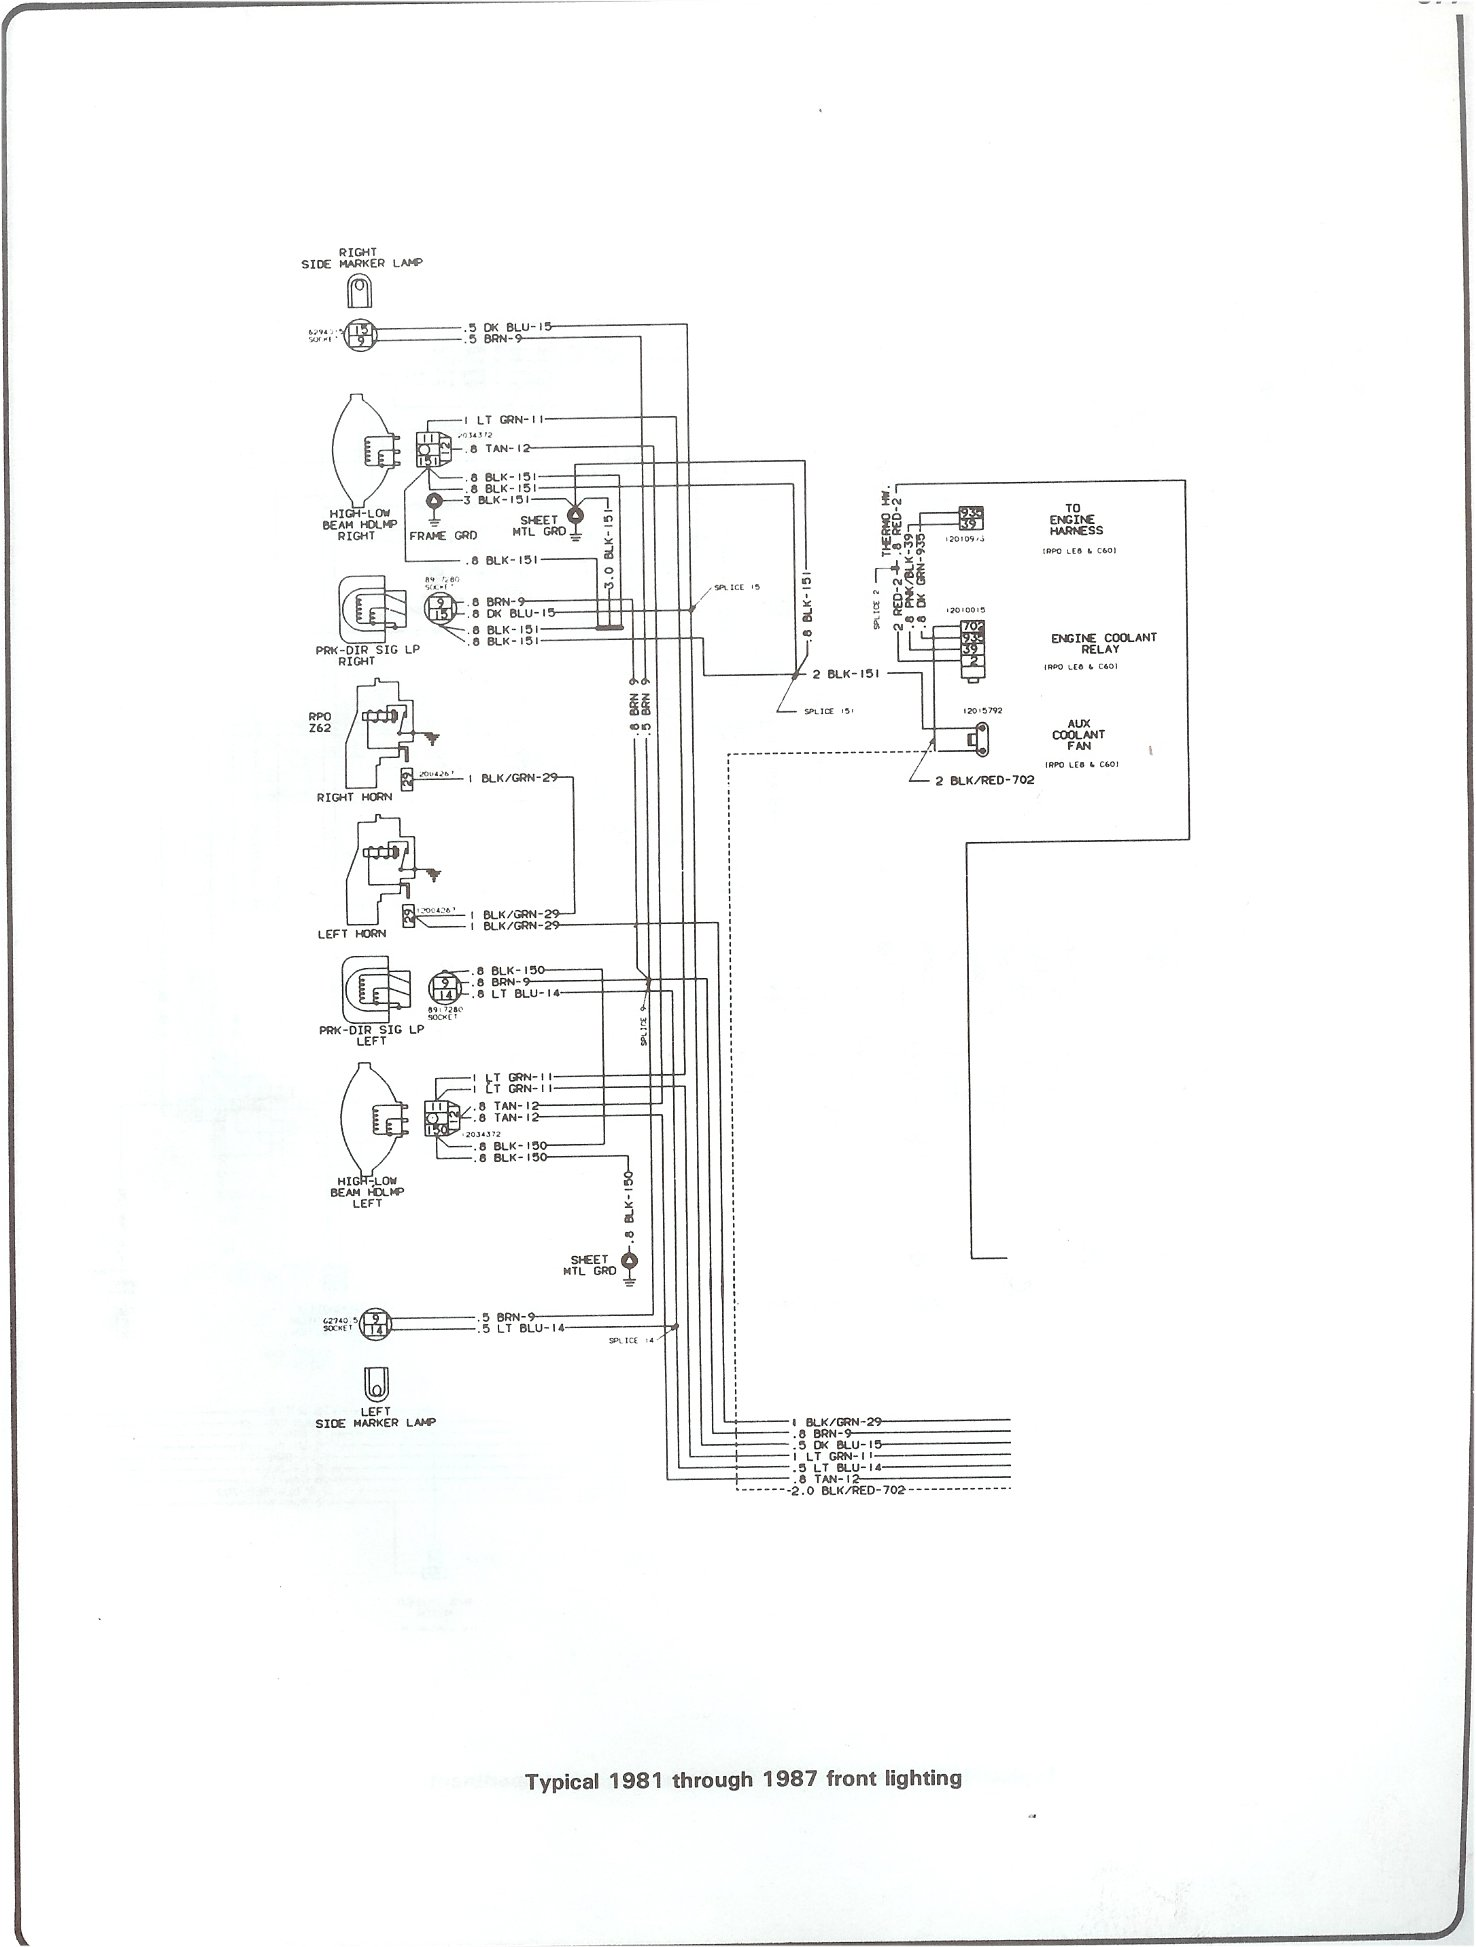 hight resolution of 81 87 front lighting complete 73 87 wiring diagrams